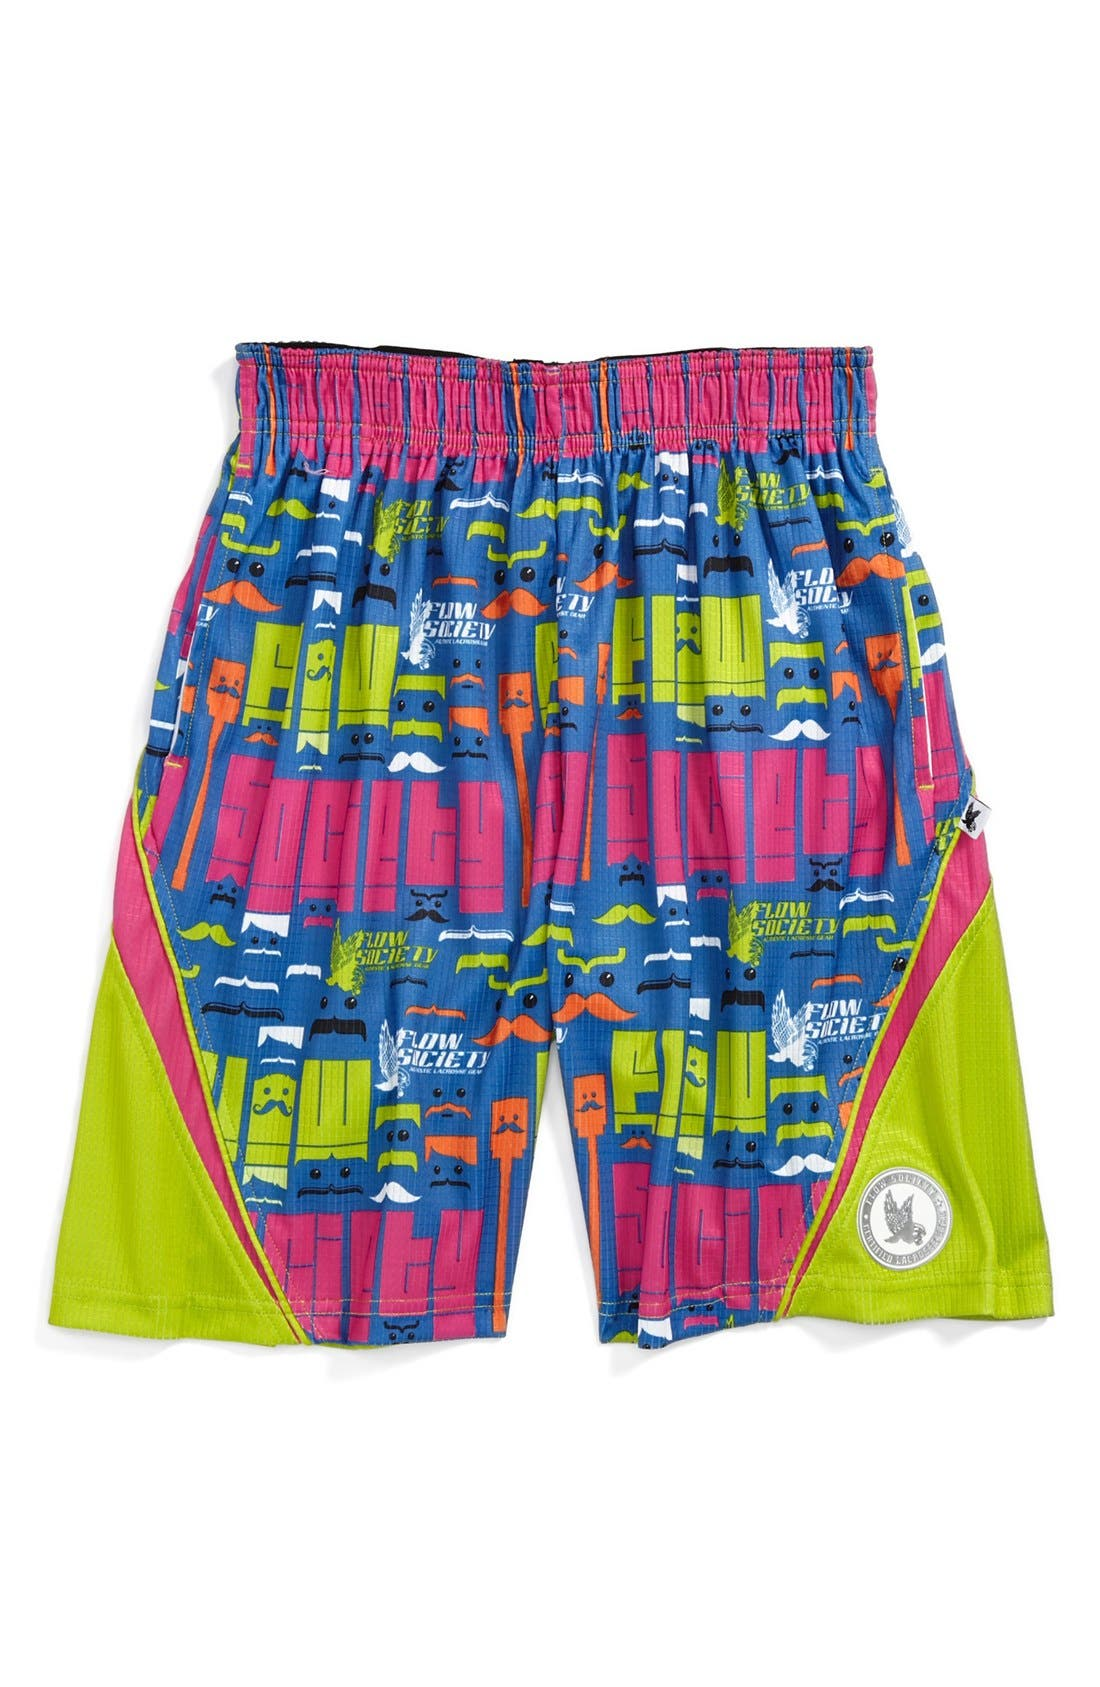 Alternate Image 1 Selected - Flow Society 'Moustache' Lacrosse Shorts (Little Boys & Big Boys)